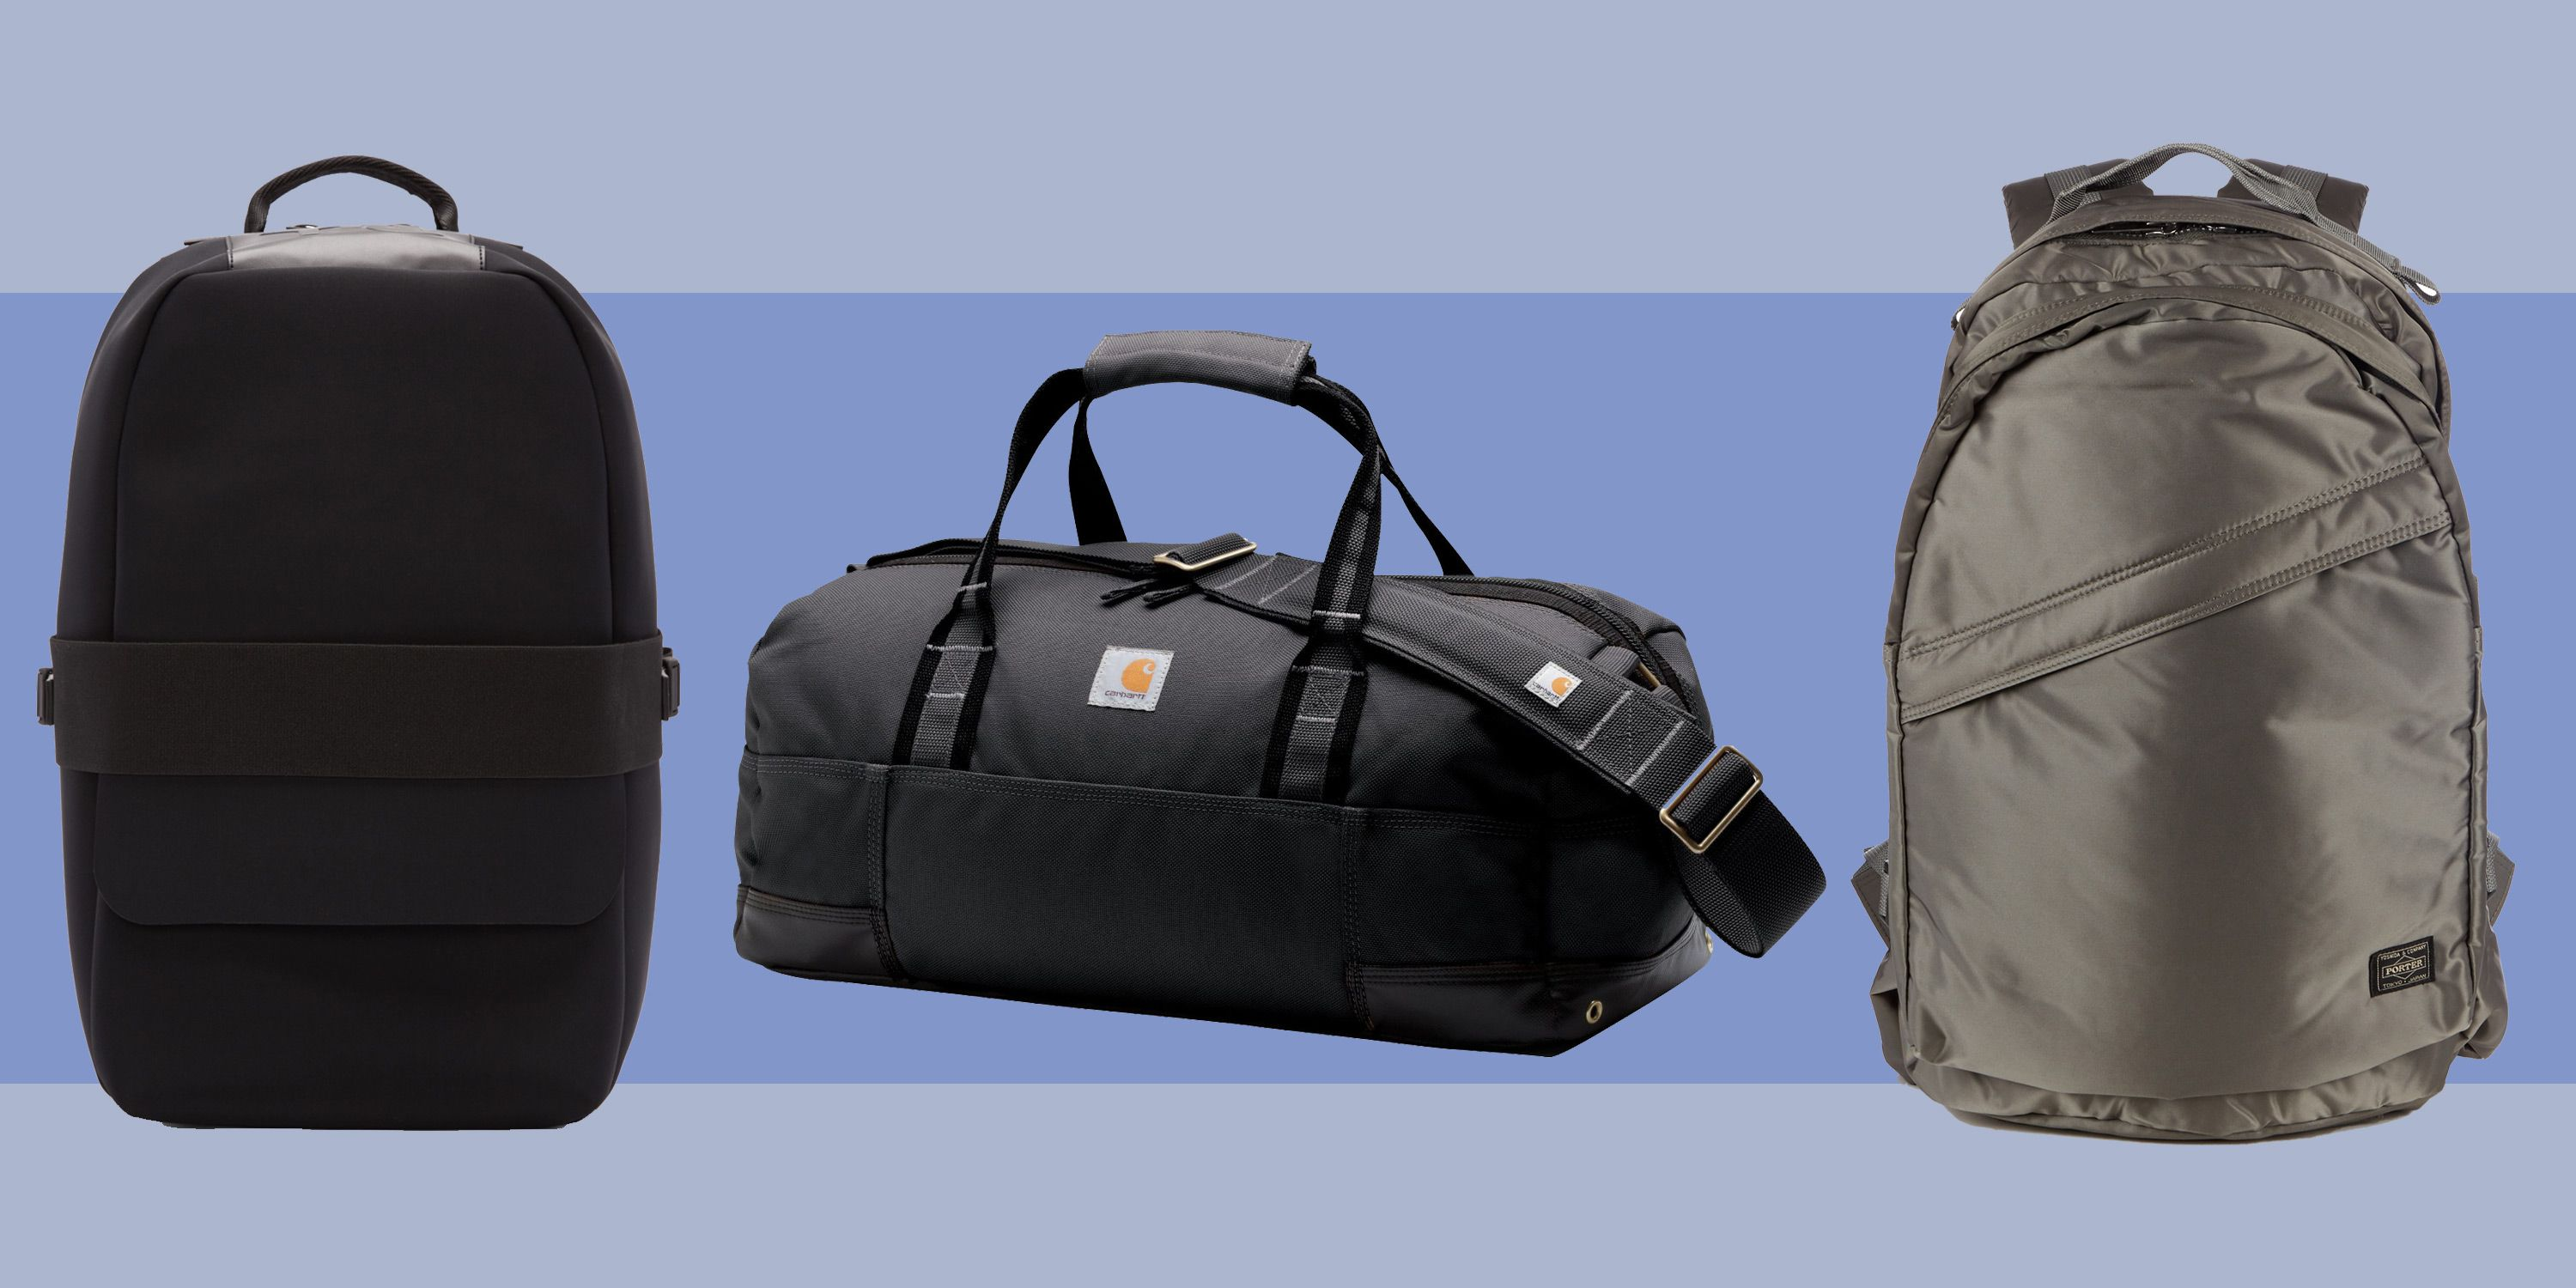 10 Actually Stylish Gym Bags For Men